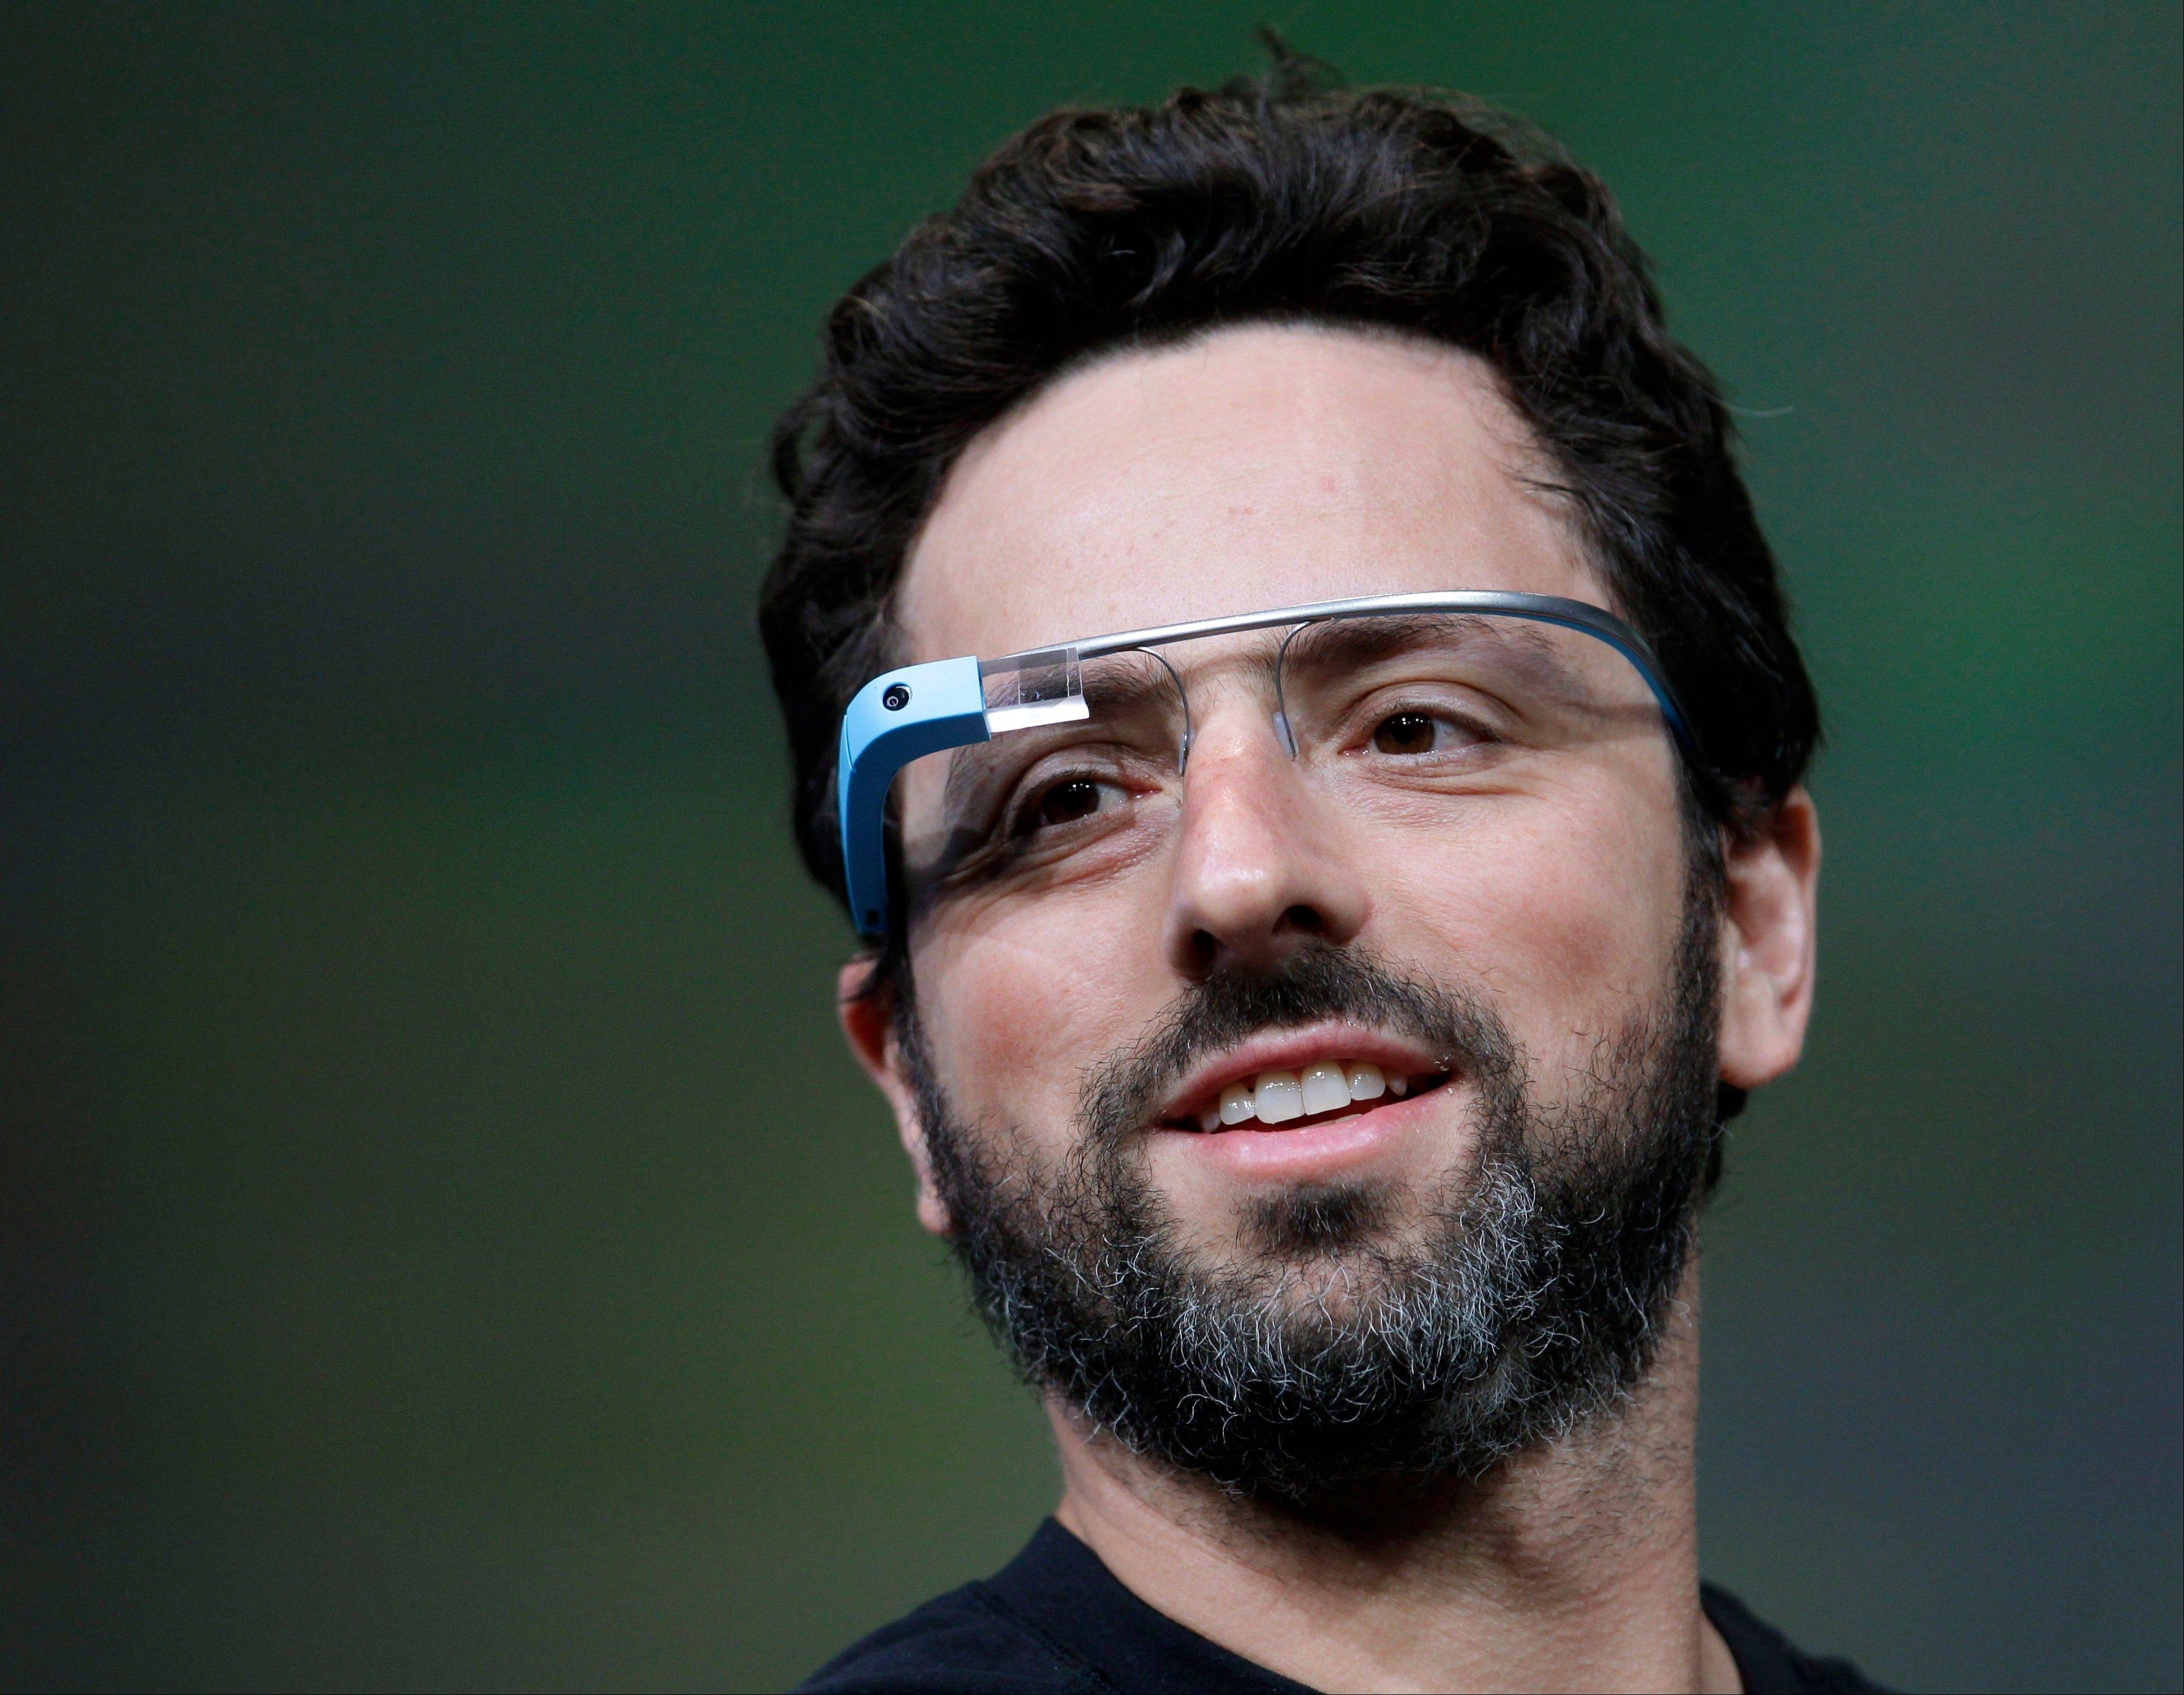 Google co-founder Sergey Brin demonstrates the company�s computerized glasses, which feature a thumbnail-size transparent video display on a lens in front of the user�s right eye.